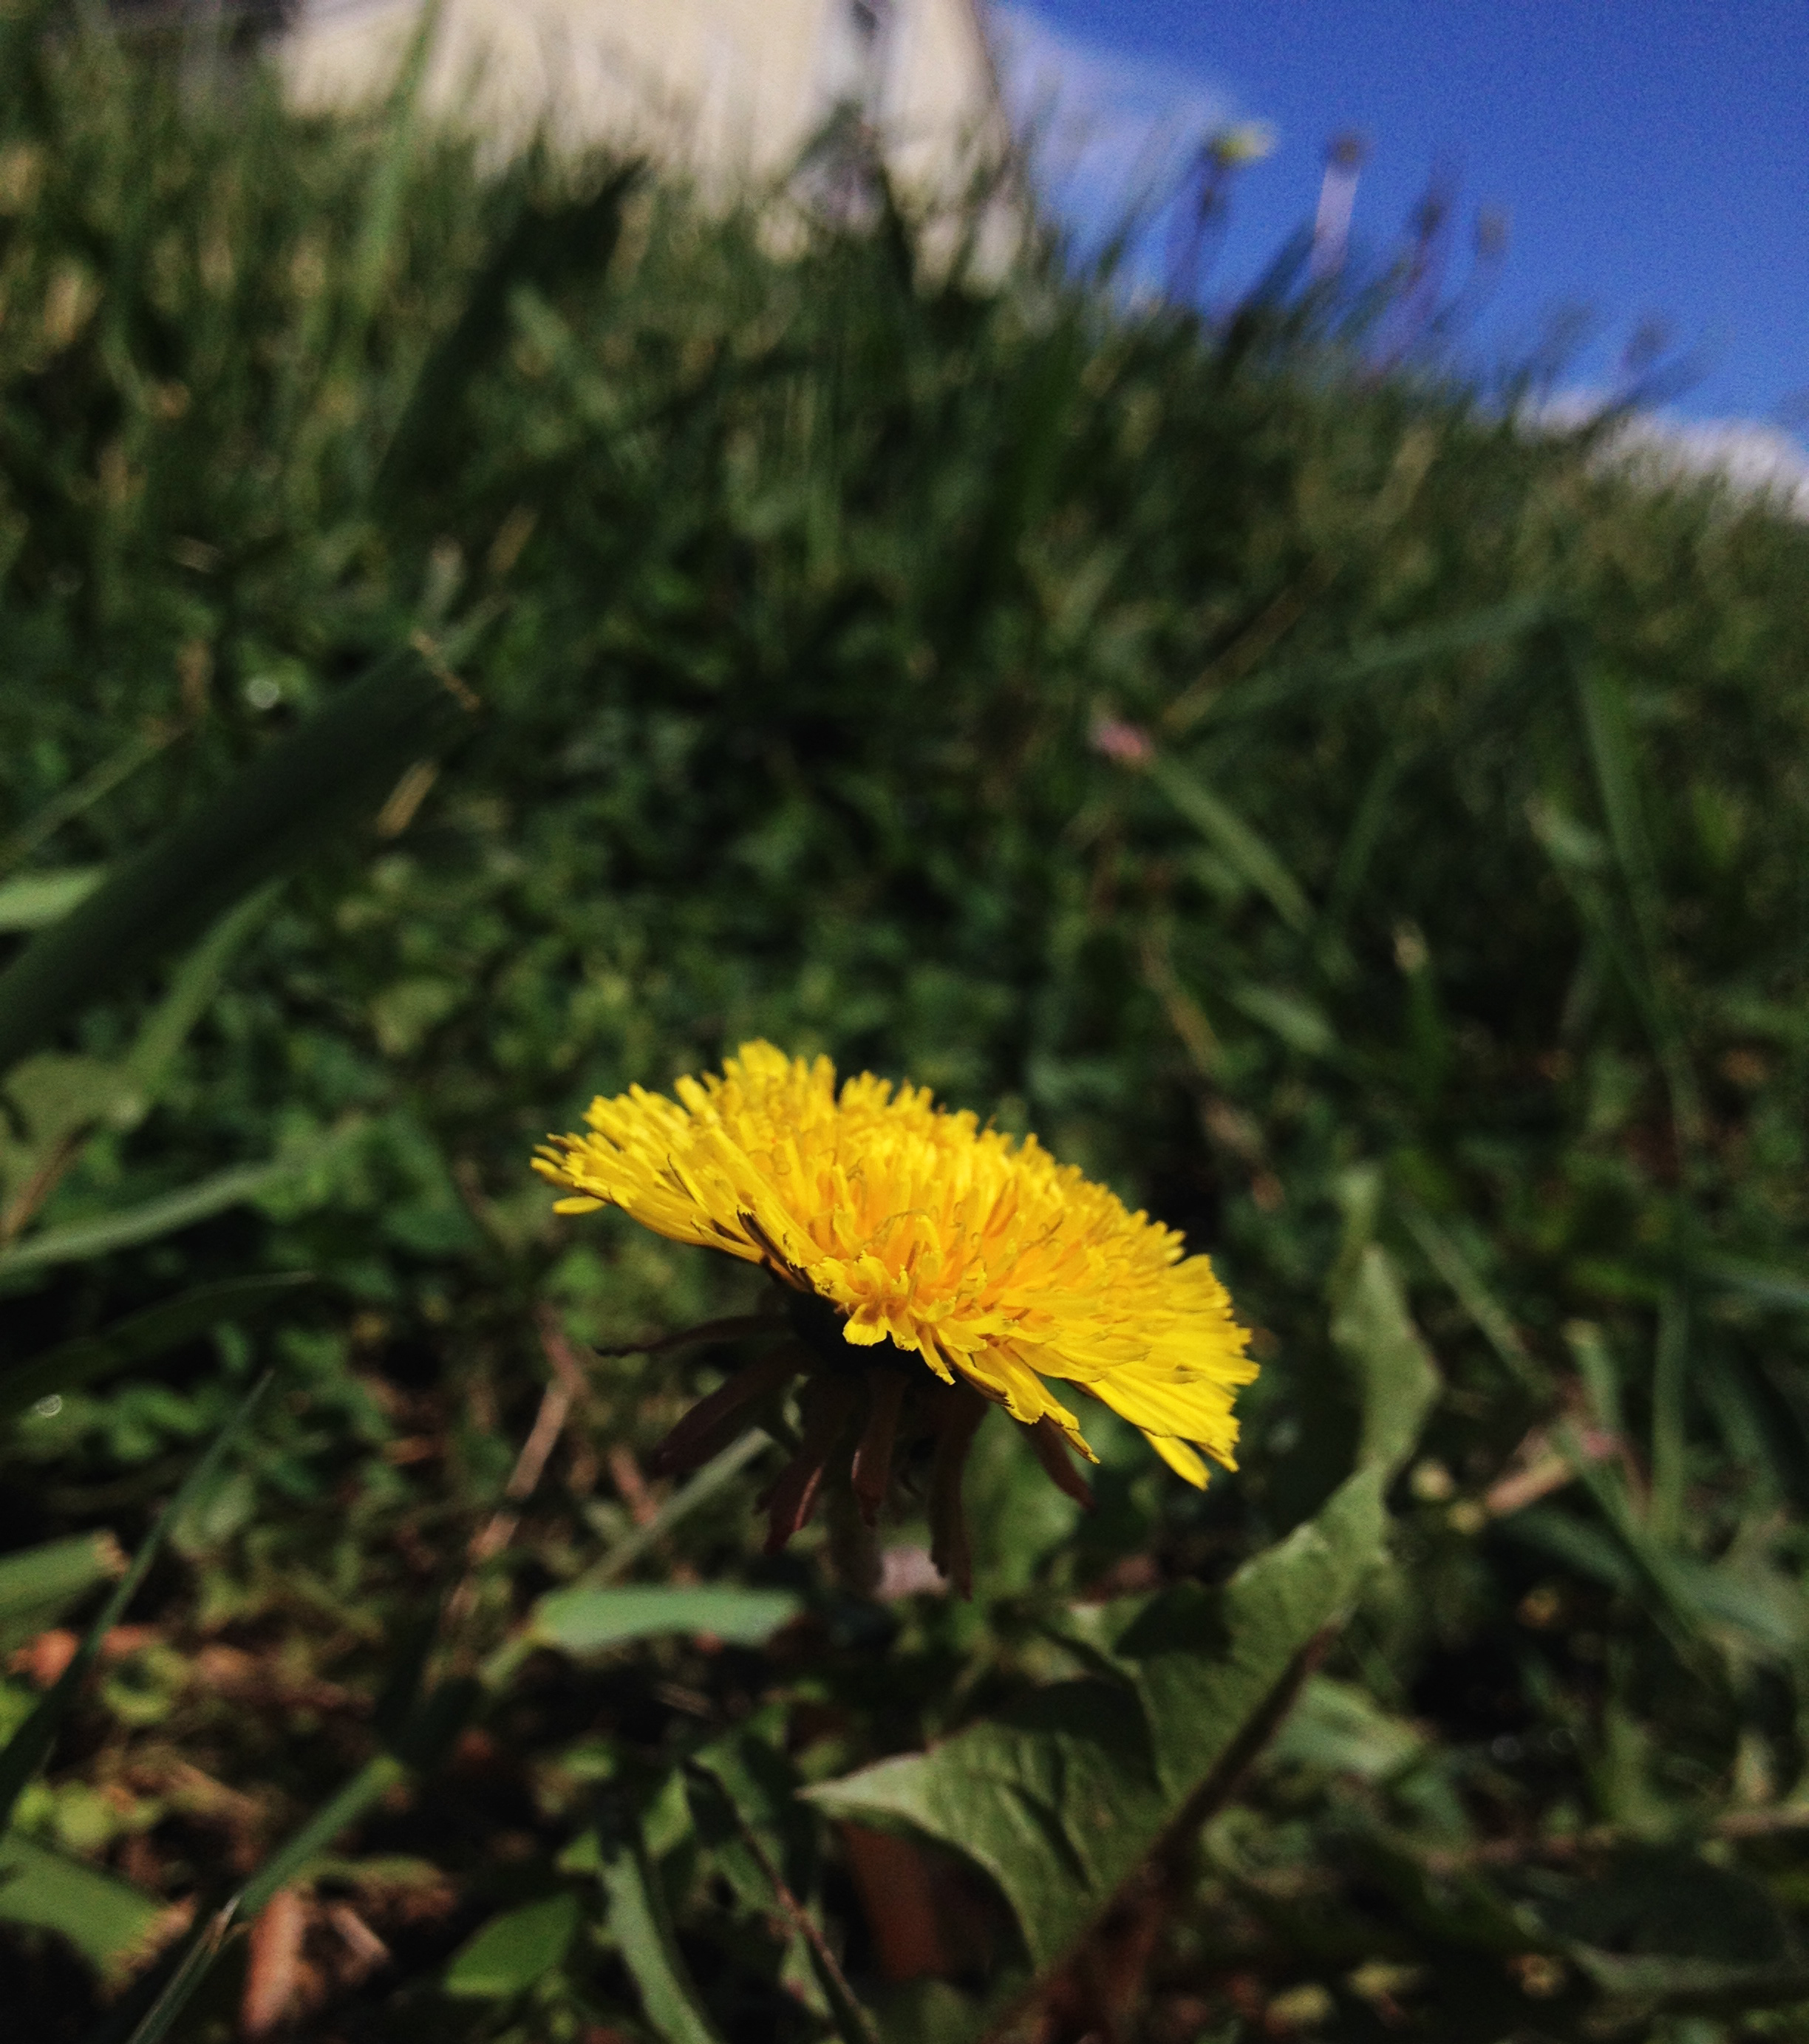 As much fun as they are as a kid, dandelions are no good for your yard!